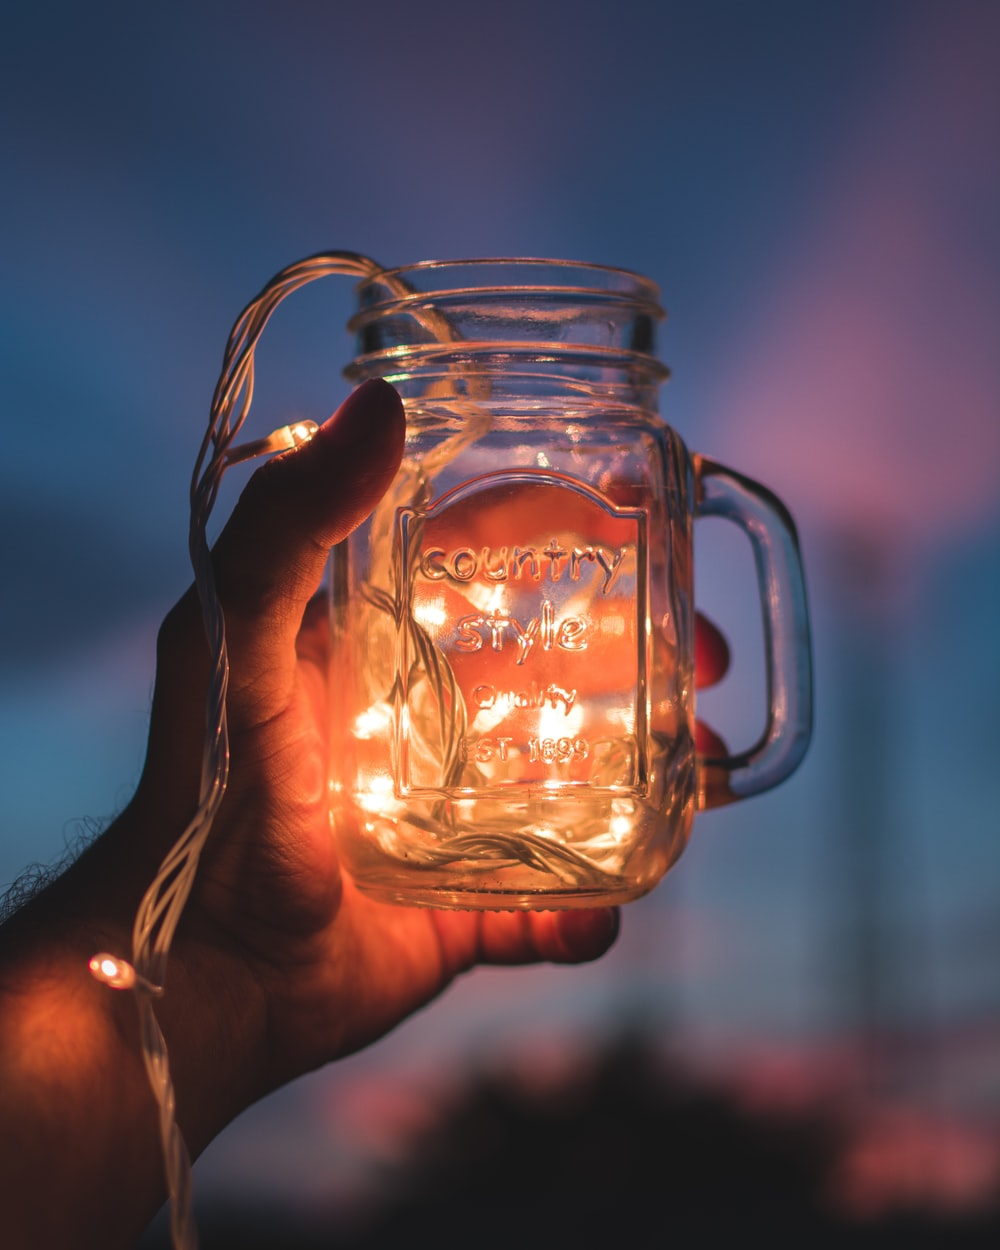 person holding jar with lighted string lights